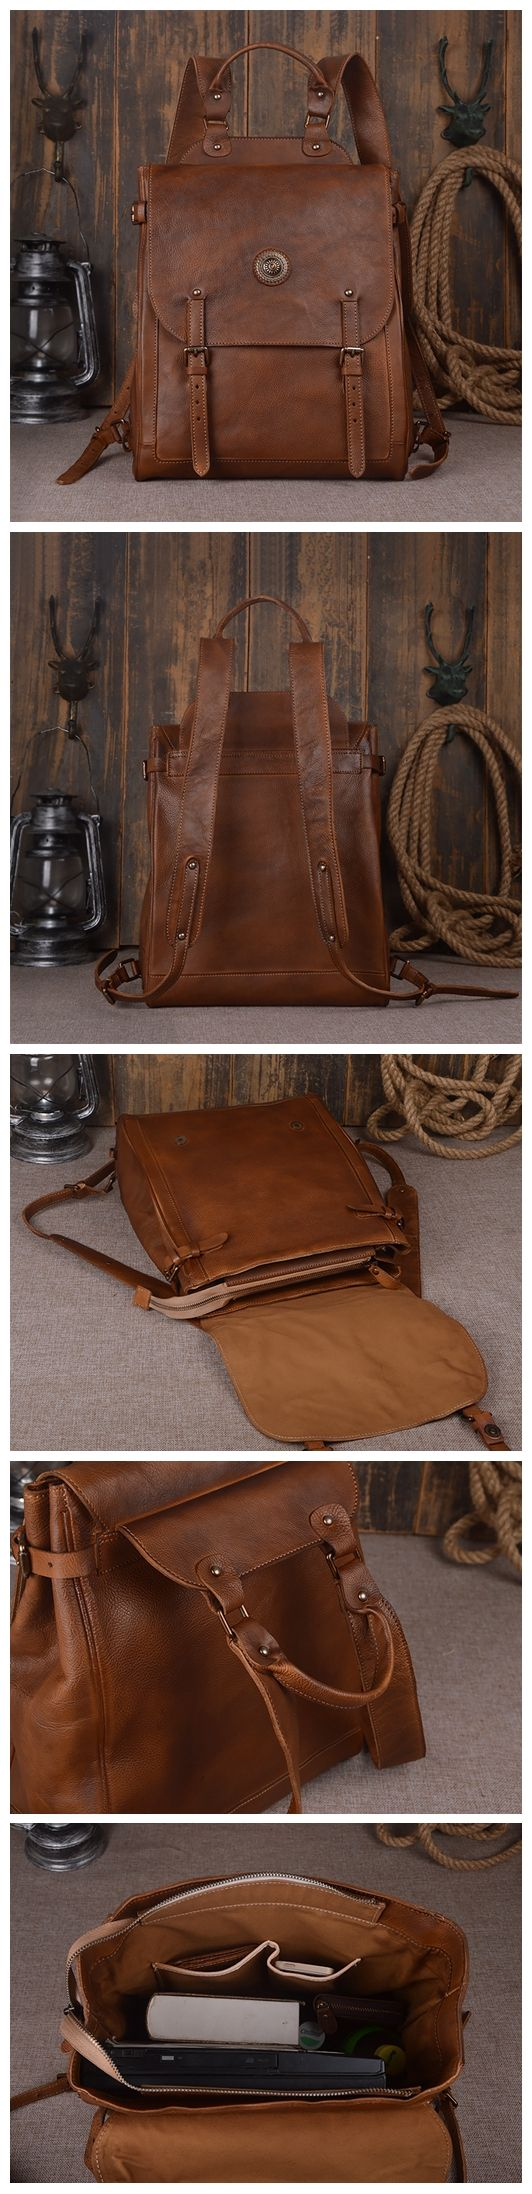 "Large Leather Backpack Vintage Leather Backpack Travel 9081 Model Number: 9081 Dimensions: 15.3""L x 5.5""W x 13""H / 39cm(L) x 14cm(W) x 33cm(H) Weight: 3.5lb / 1.6kg Hardware: Brass Hardware Color: Dar"